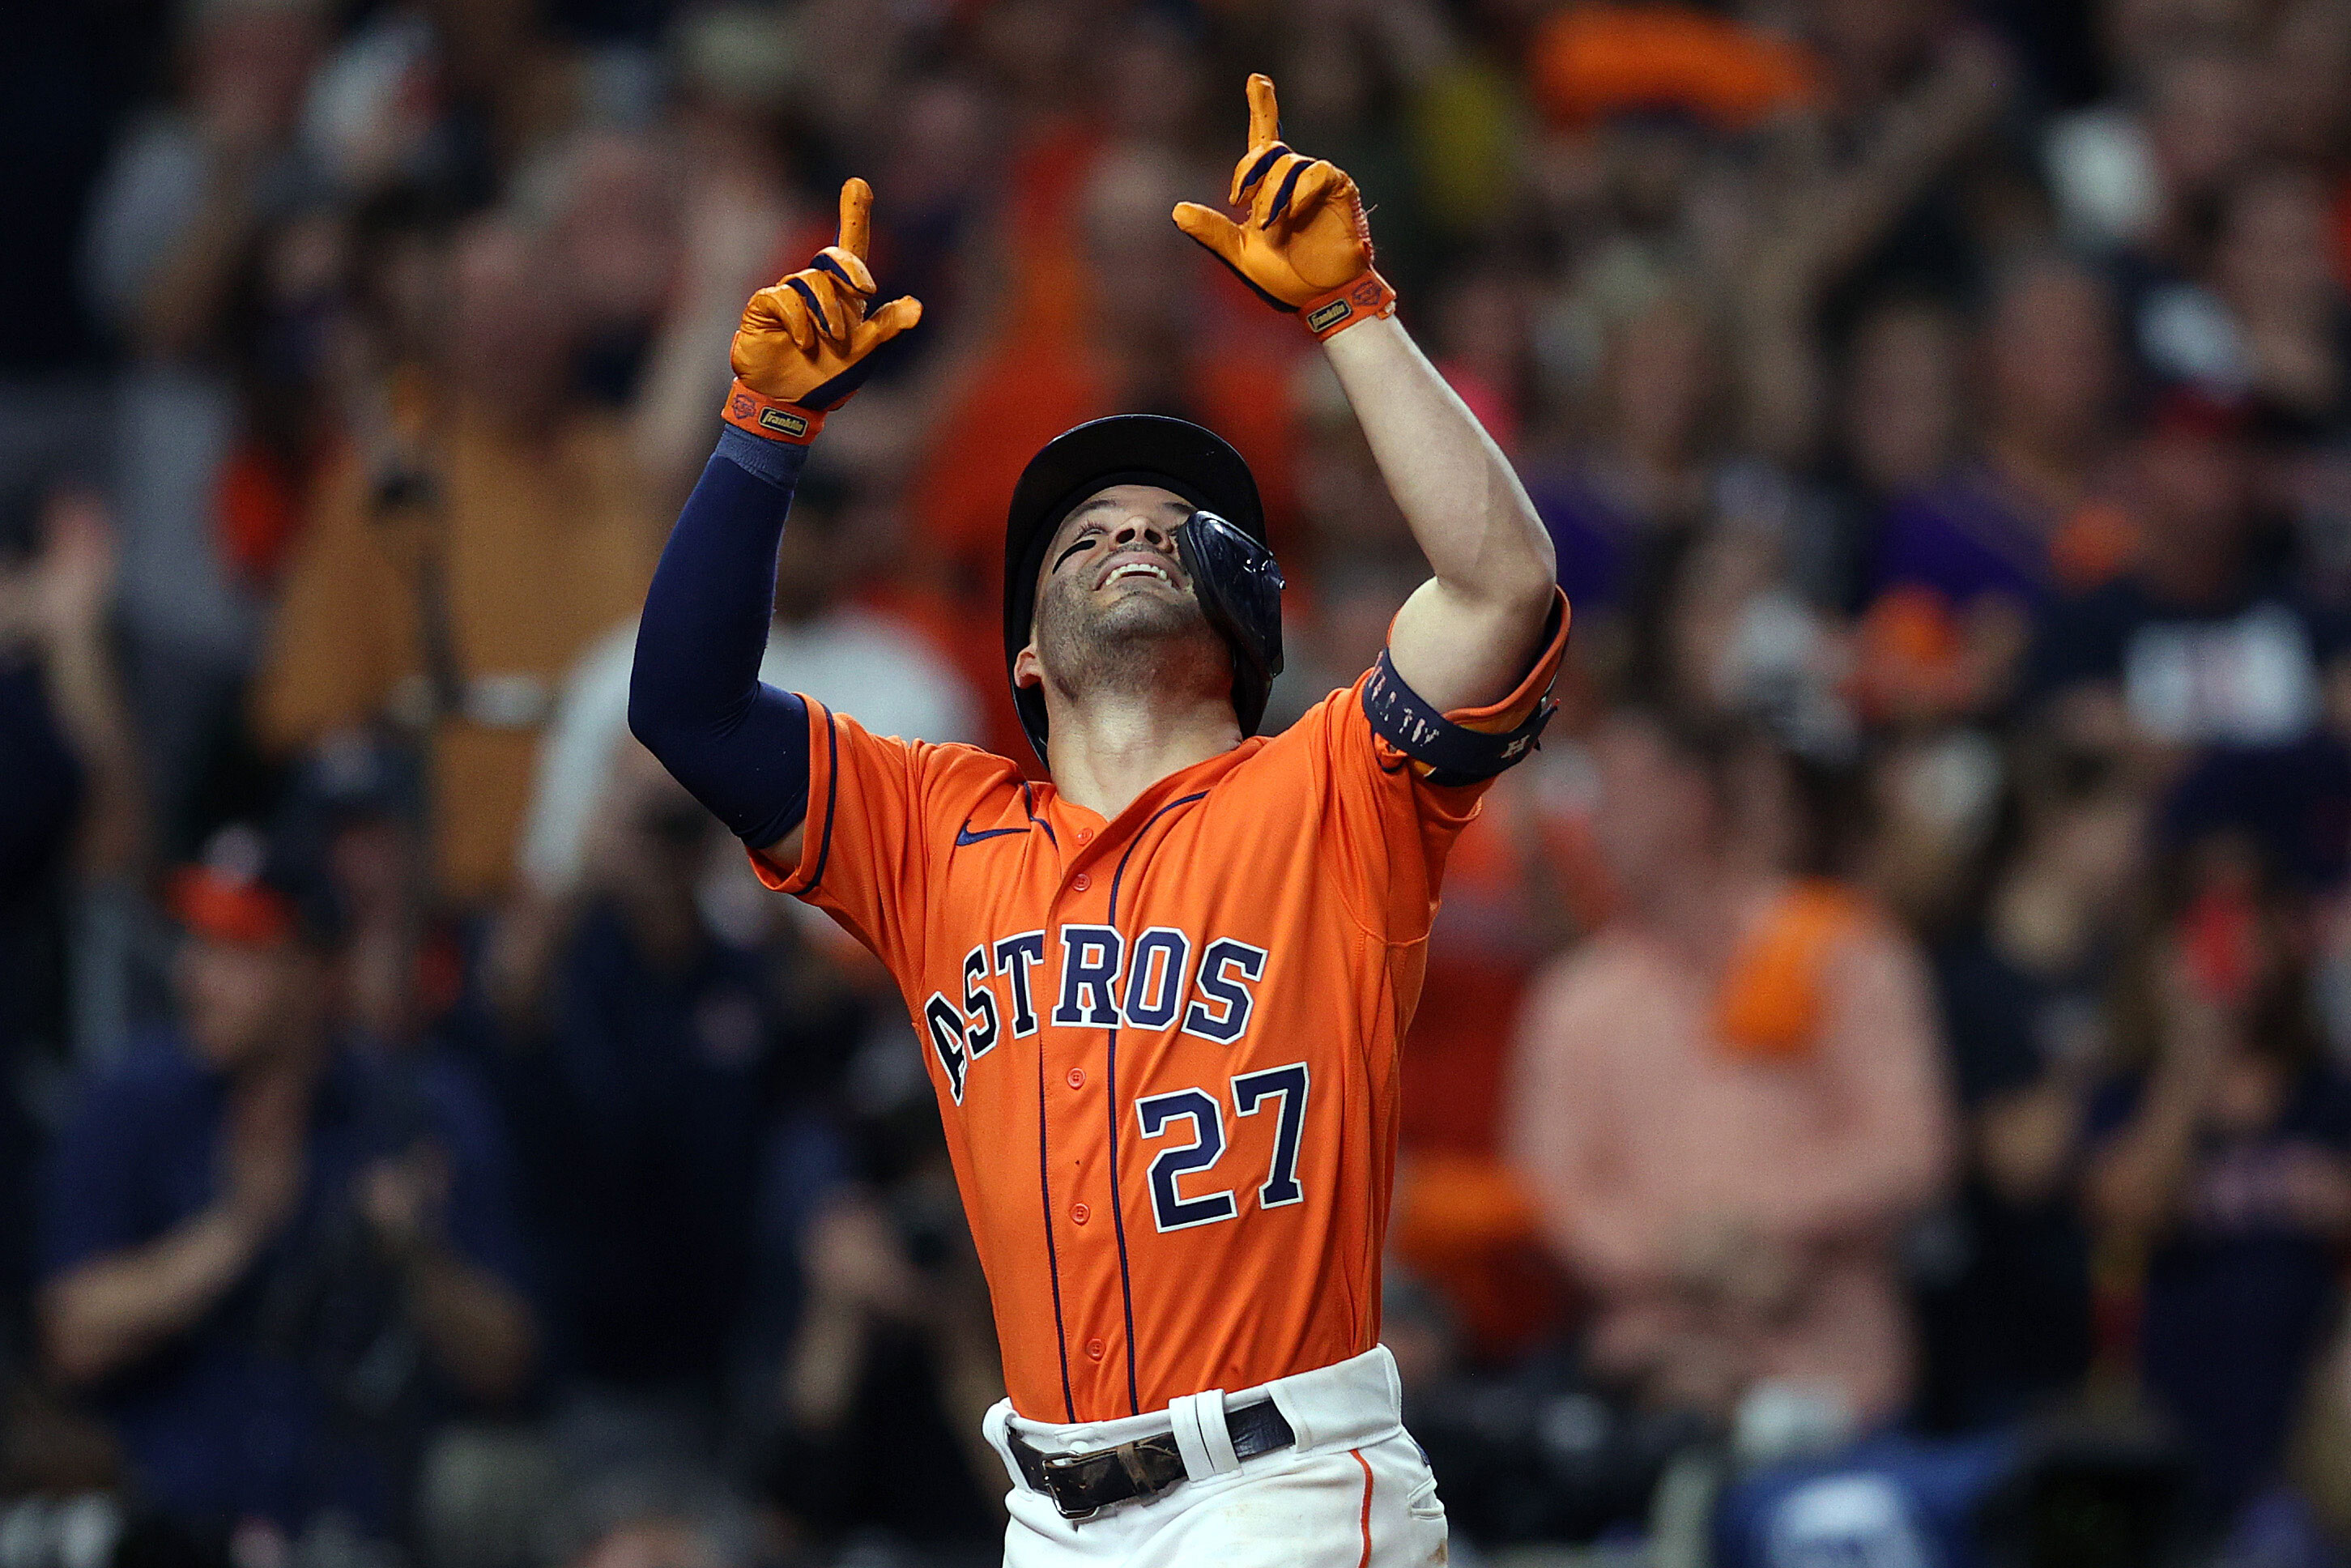 Houston Astros dominate Atlanta Braves to even up World Series with strong Game 2 win